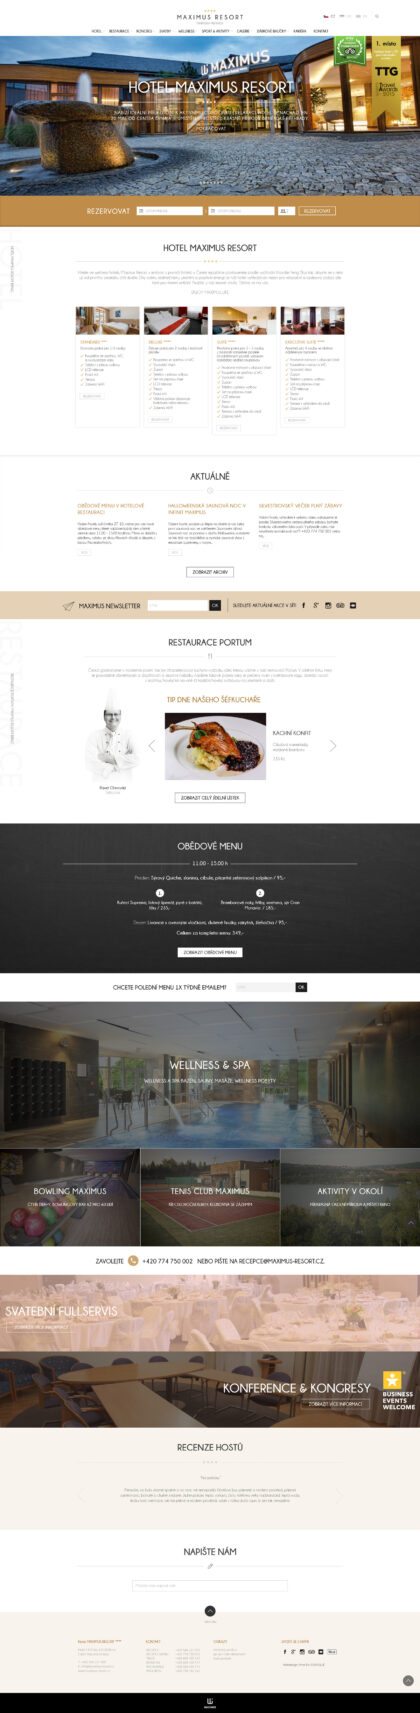 Hotel Maximus Resort - realizace, Webdesign